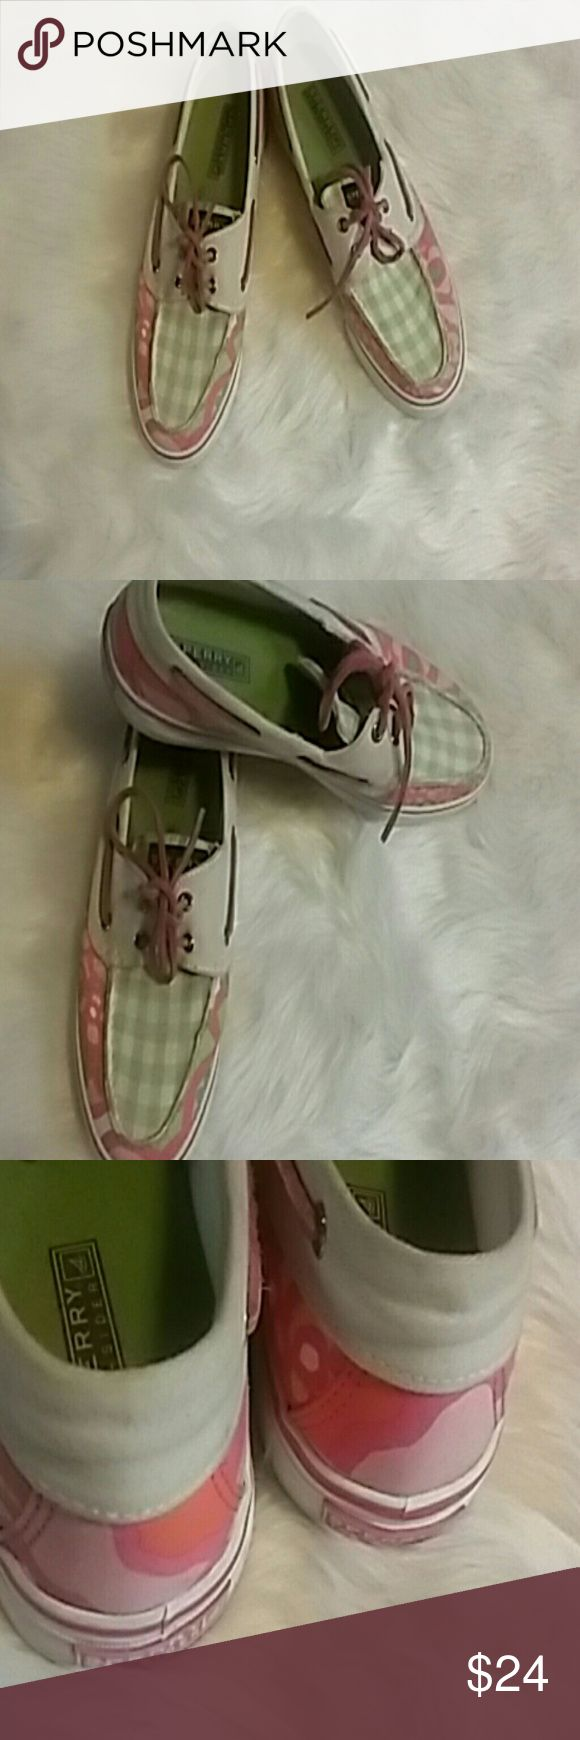 Sperry Top Siders. Multi colored boat shoes. 9 Sperry Top Siders  Multi colored pink green white boat shoes. 9. These are preowned with. Love Sperry Top-Sider Shoes Sneakers